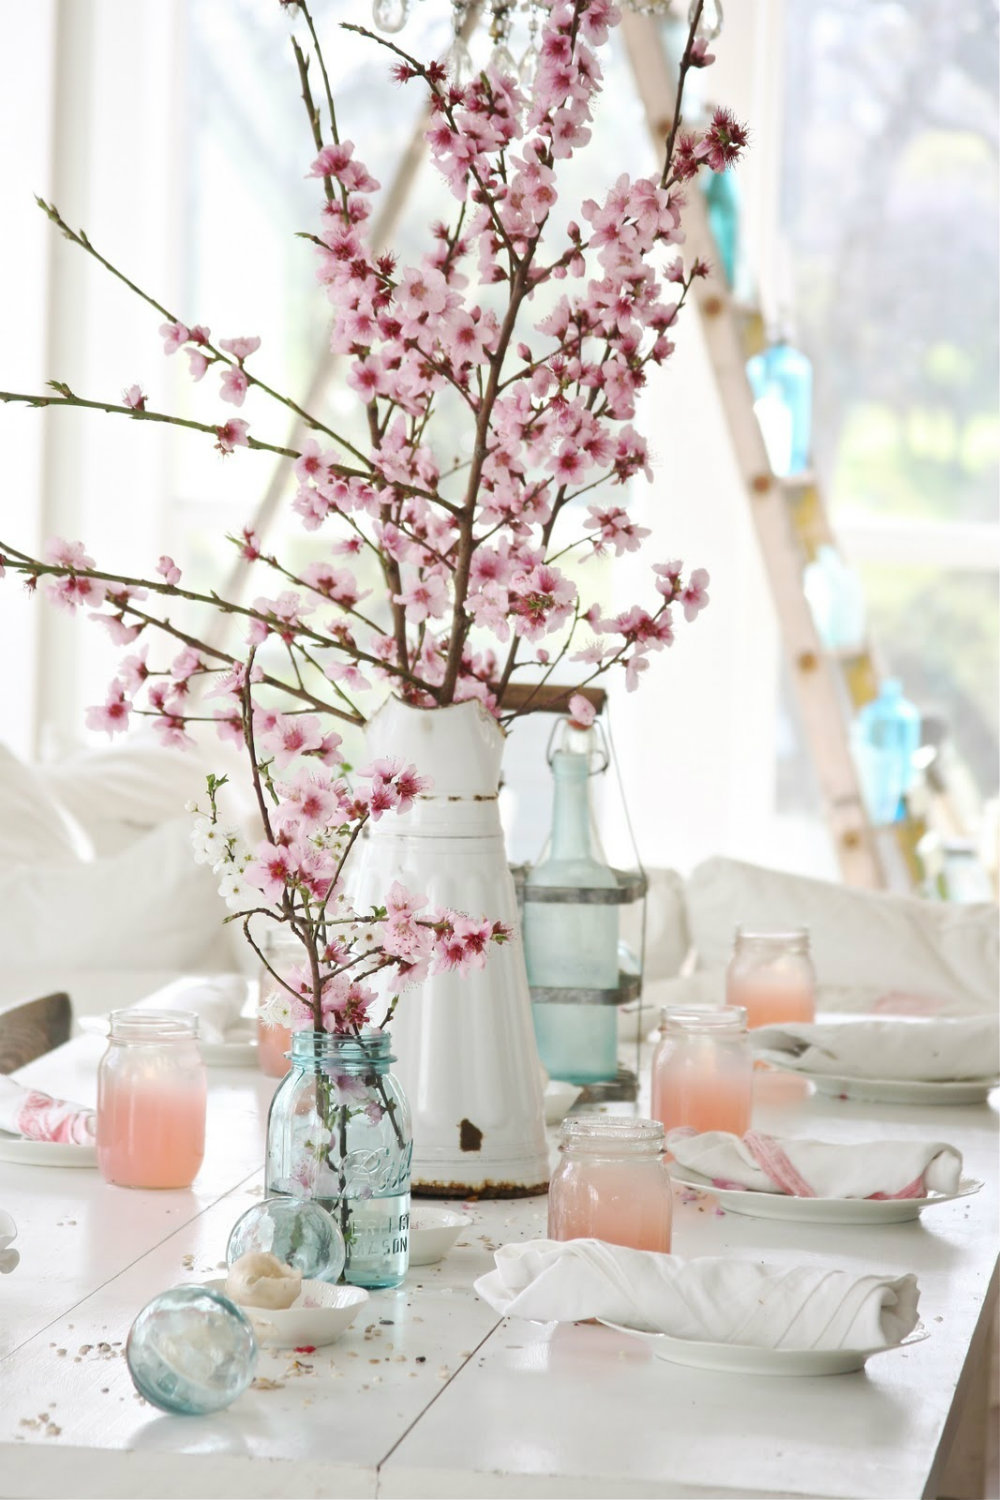 Stunning Easter Table Setting Ideas You Will Love 03 Easter Table Setting  Ideas Stunning Easter Table